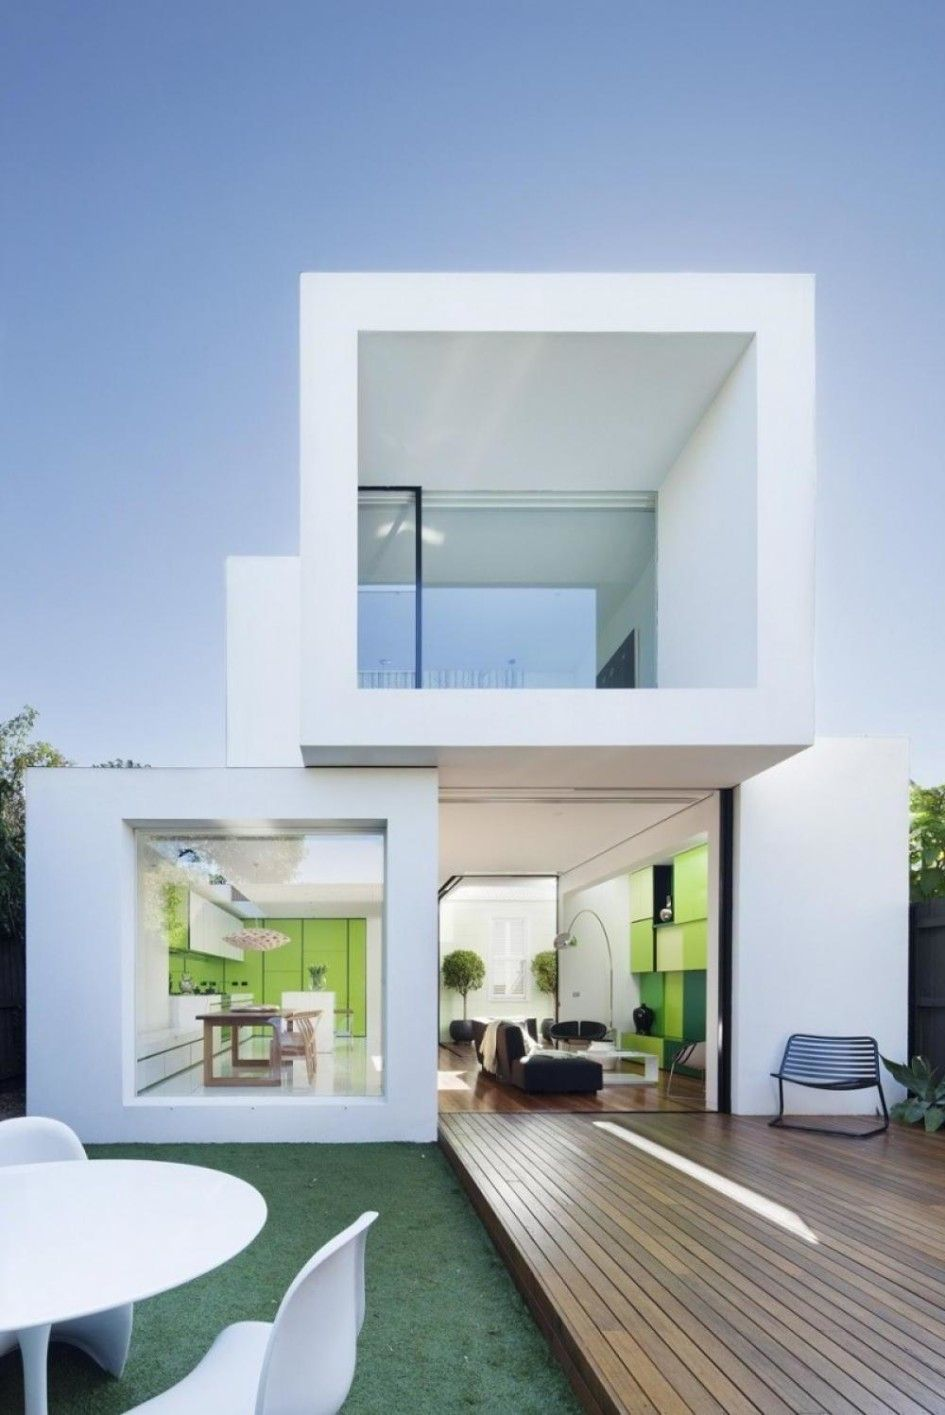 Awesome Green Interior Design green living room decorating ideas home interior decoration awesome green living room designs Home Design Awesome Green Architecture Design For A Sustainable Future Best Green House Architecture